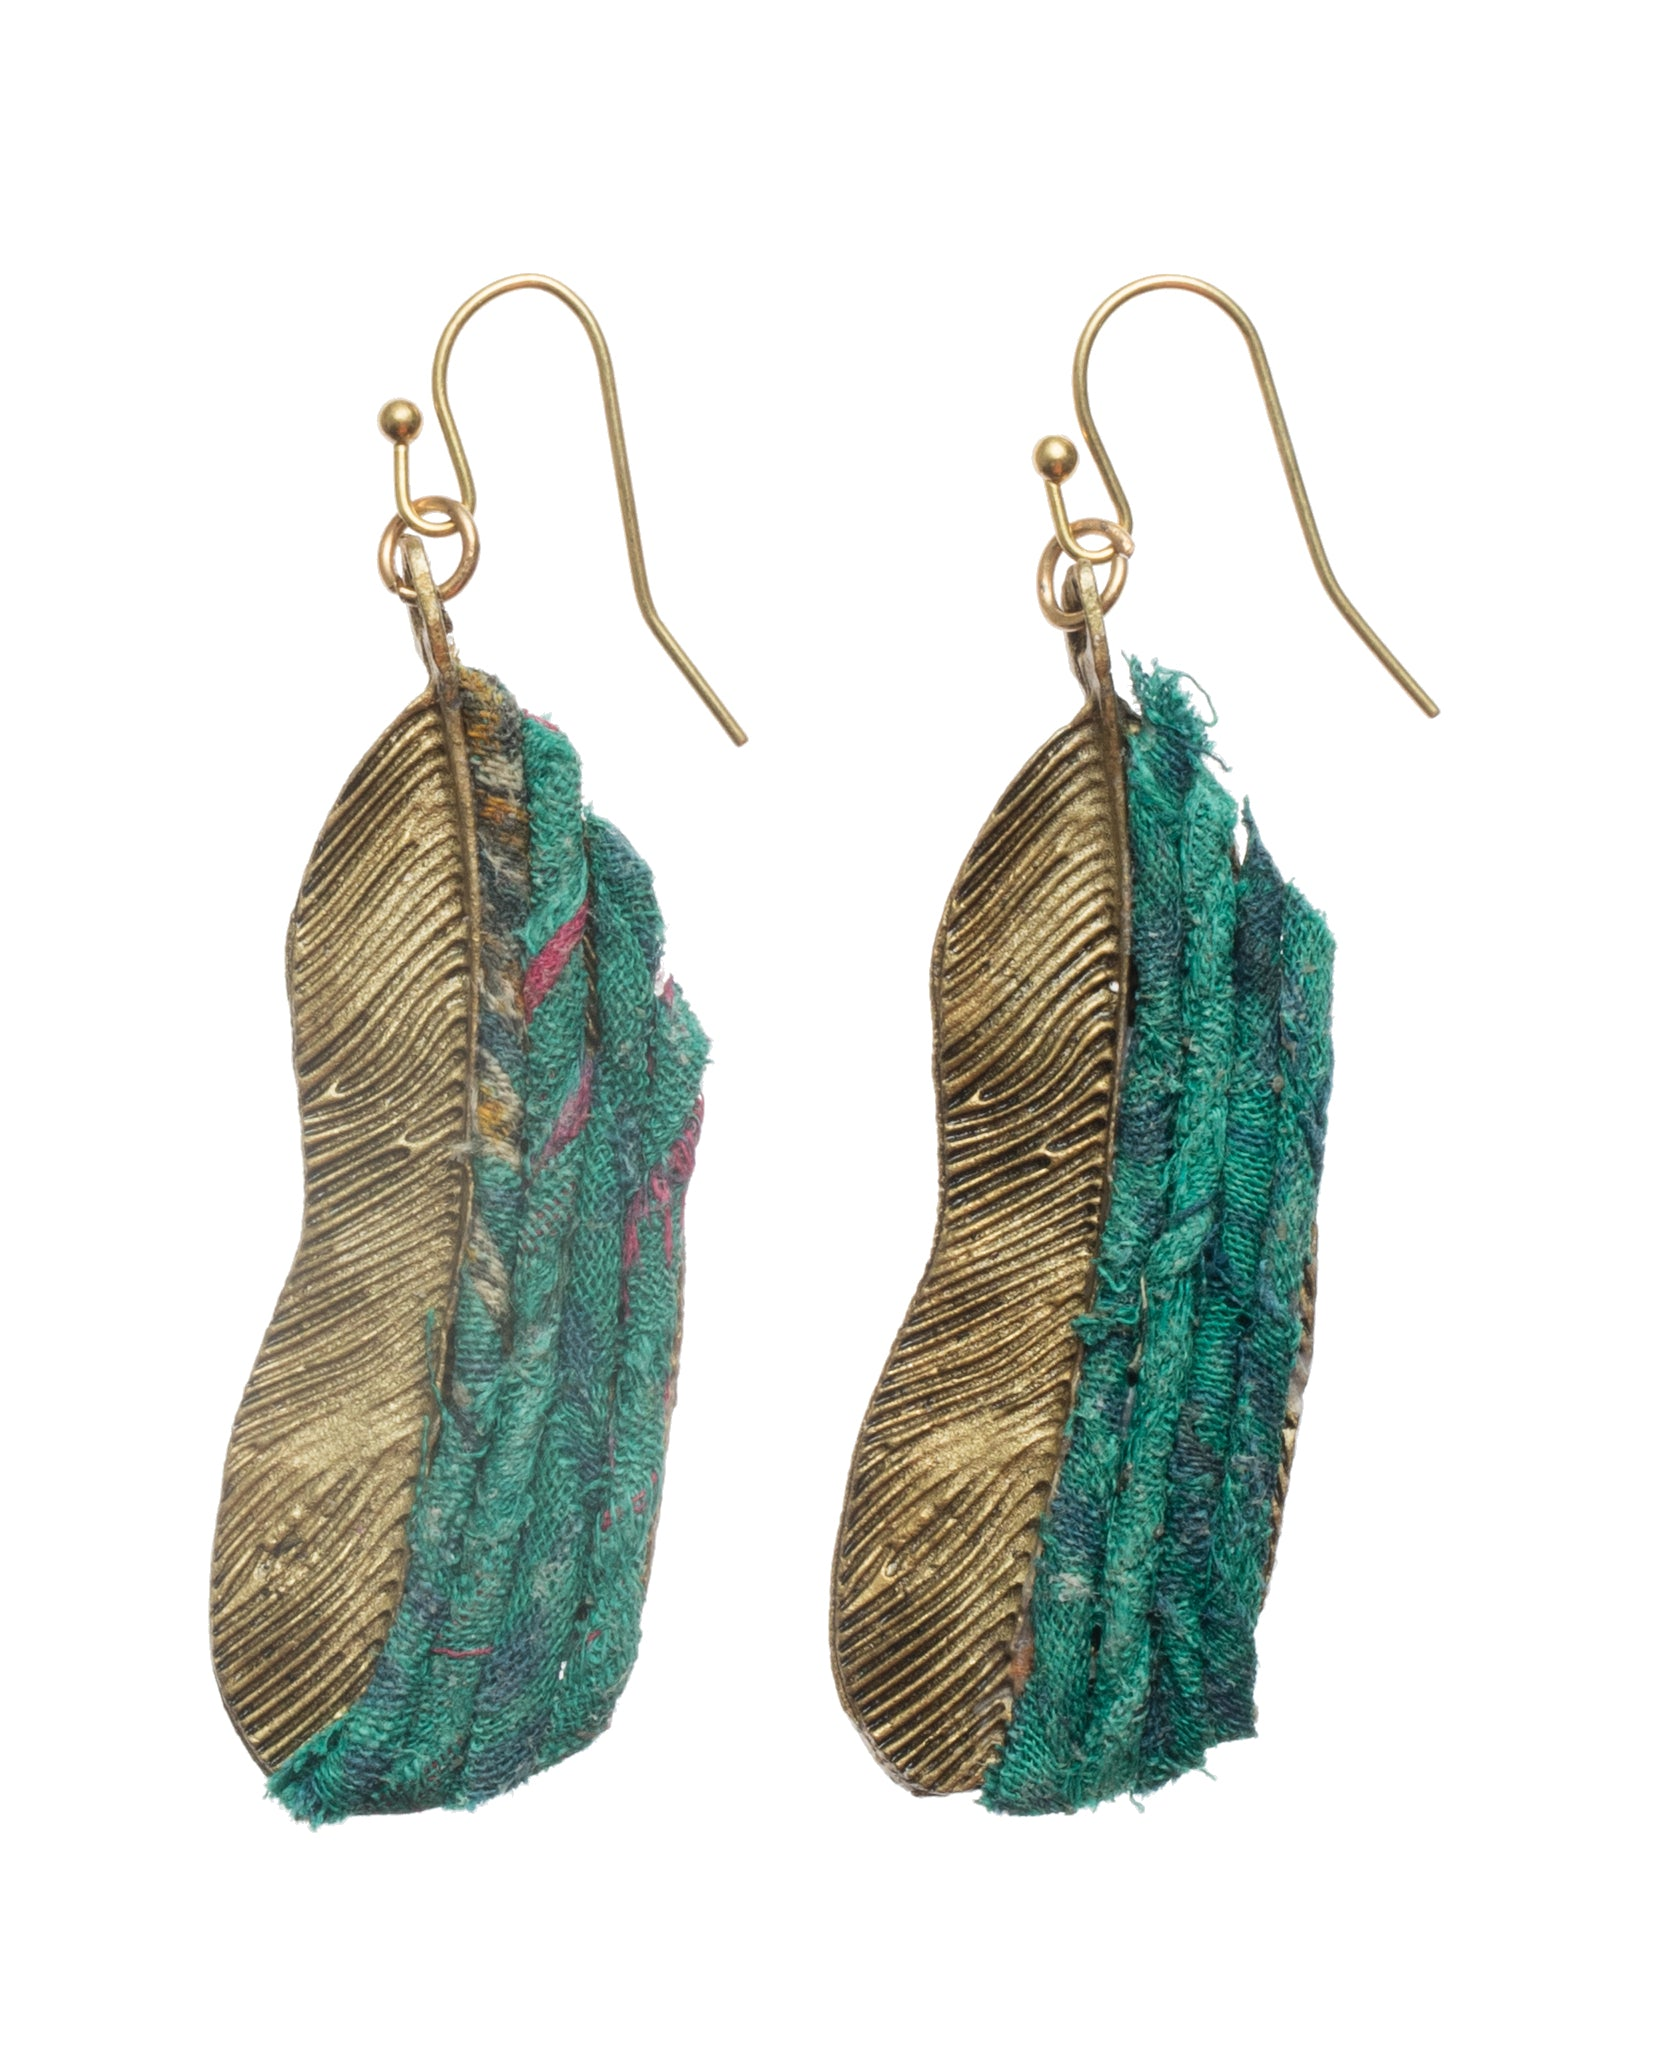 Handcrafted Upcycled Earrings